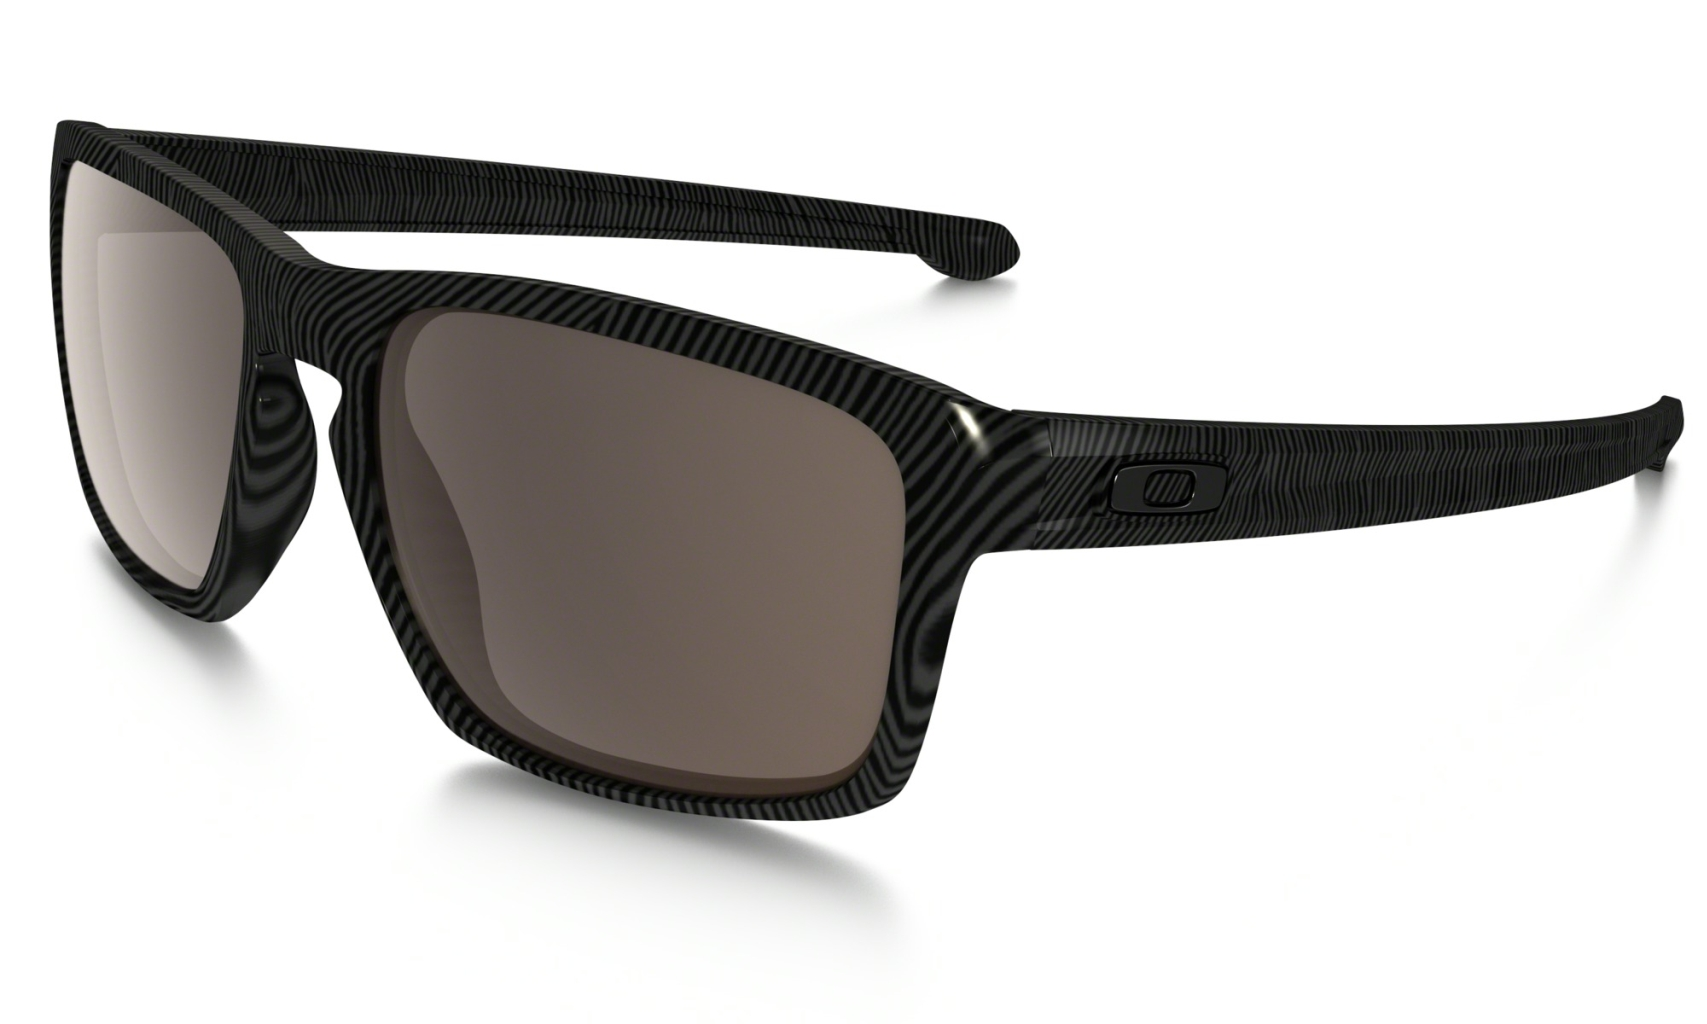 Oakley Sliver Fingerprint Dark Grey w/Warm Grey-30